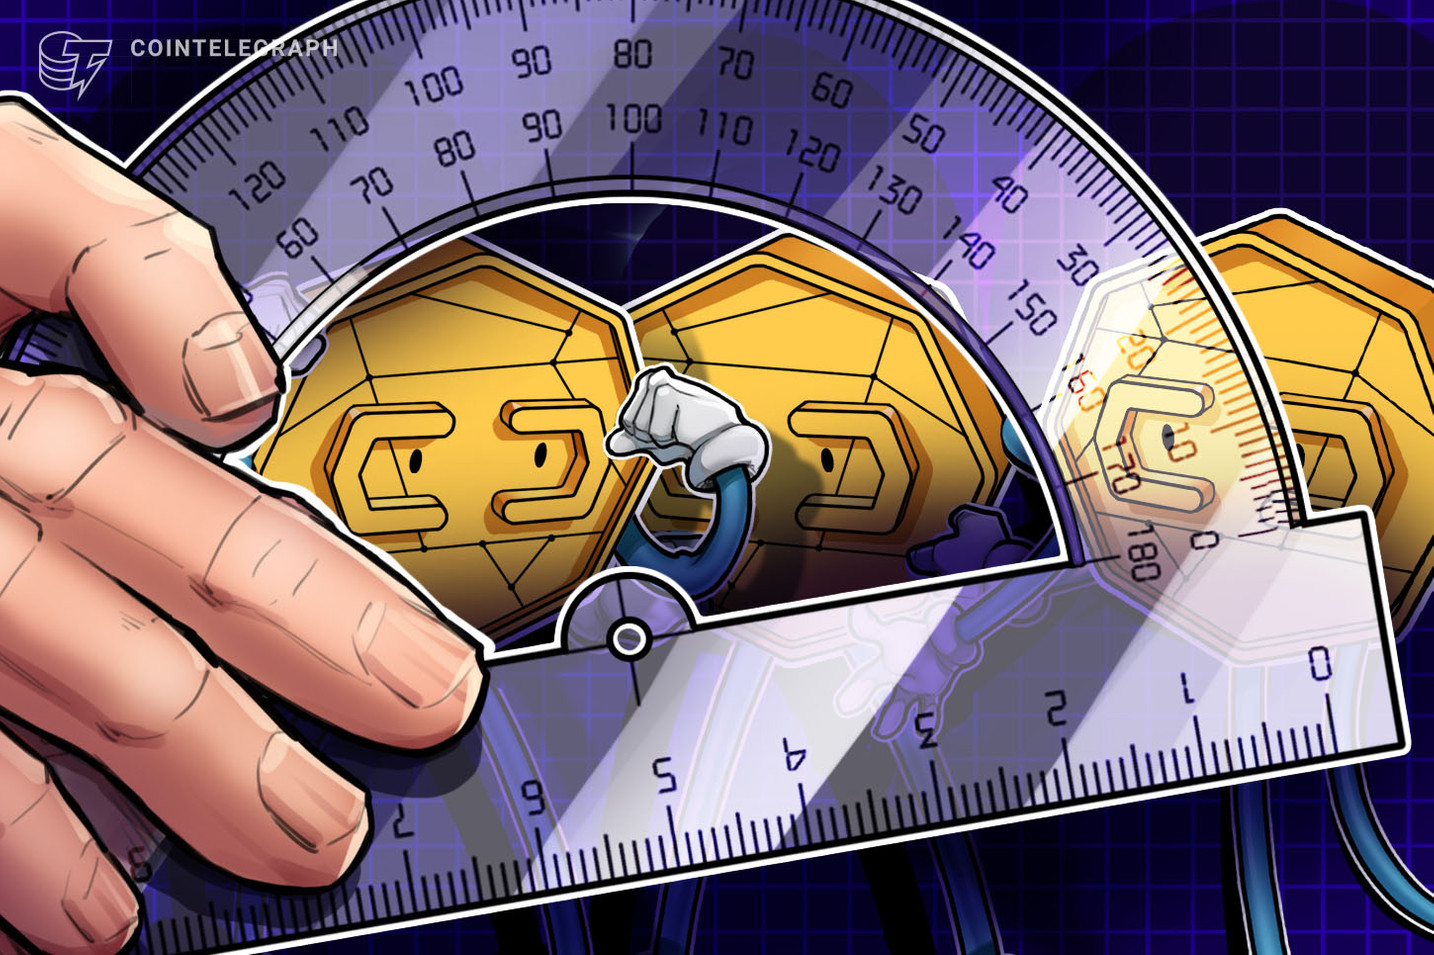 Altcoins and stocks move higher after Bitcoin price rally to $40,000